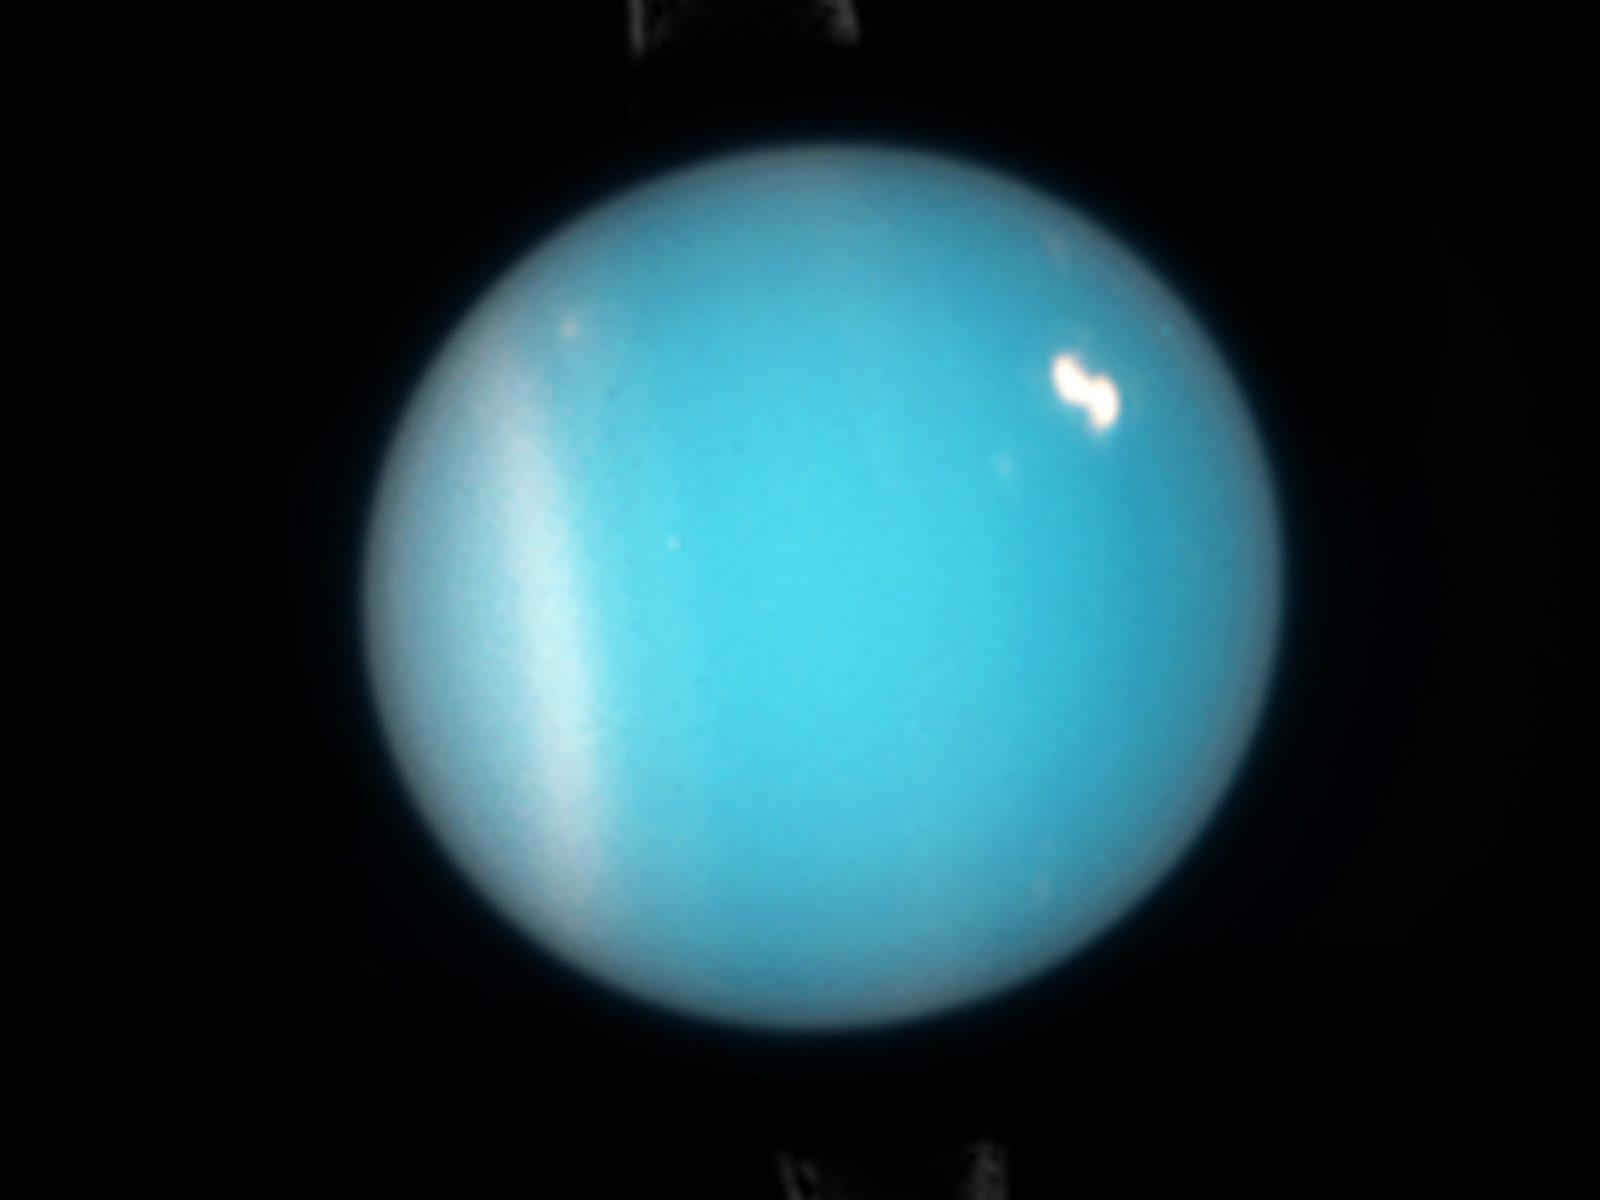 nasa photos of uranus - photo #15